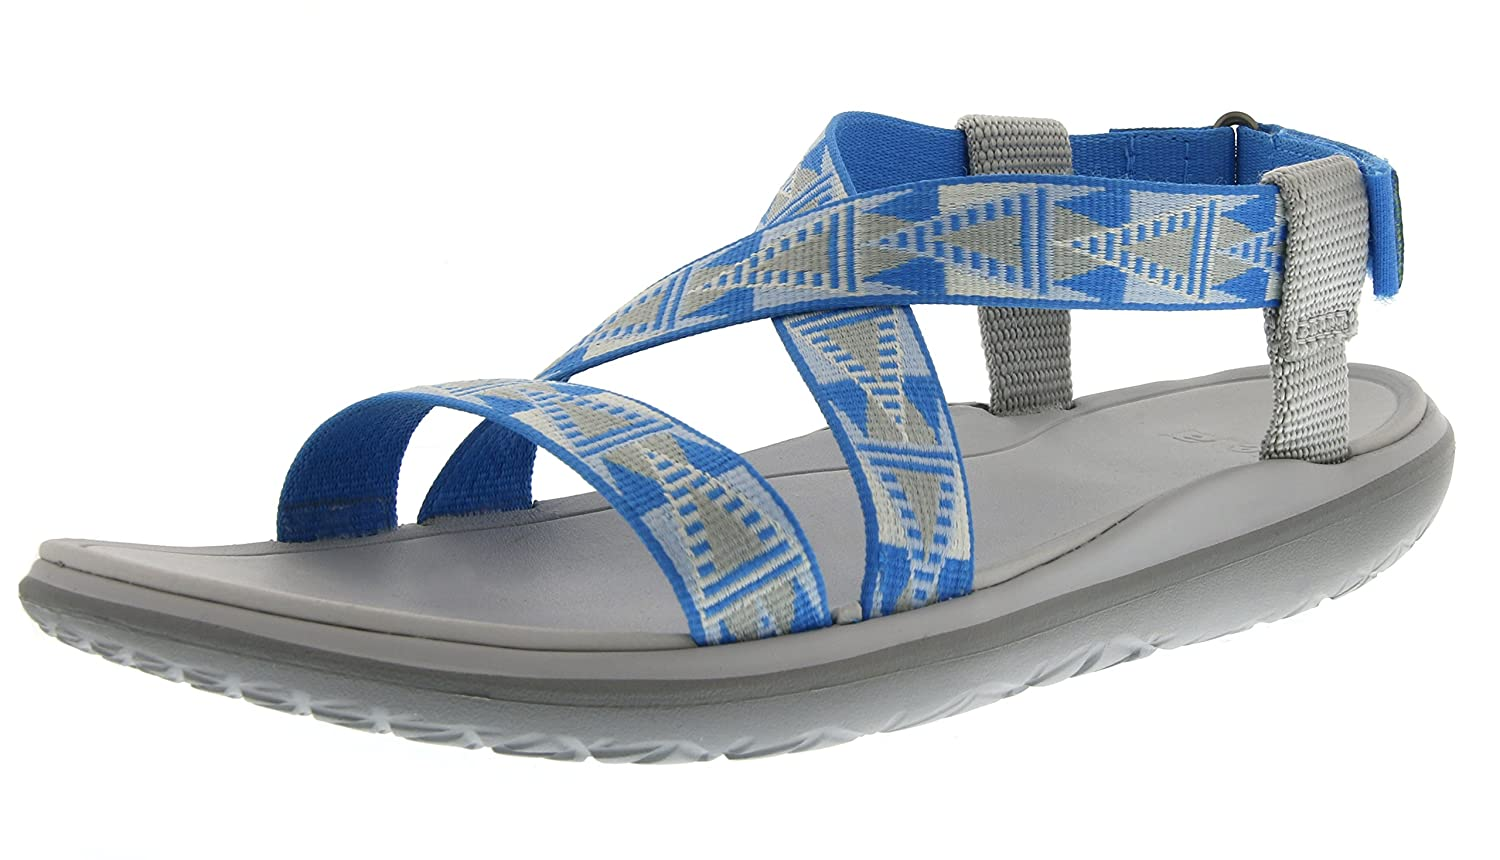 Teva Women's Terra-Float Livia Sandal B00ZFMBDG8 8 B(M) US|Grey/Blue